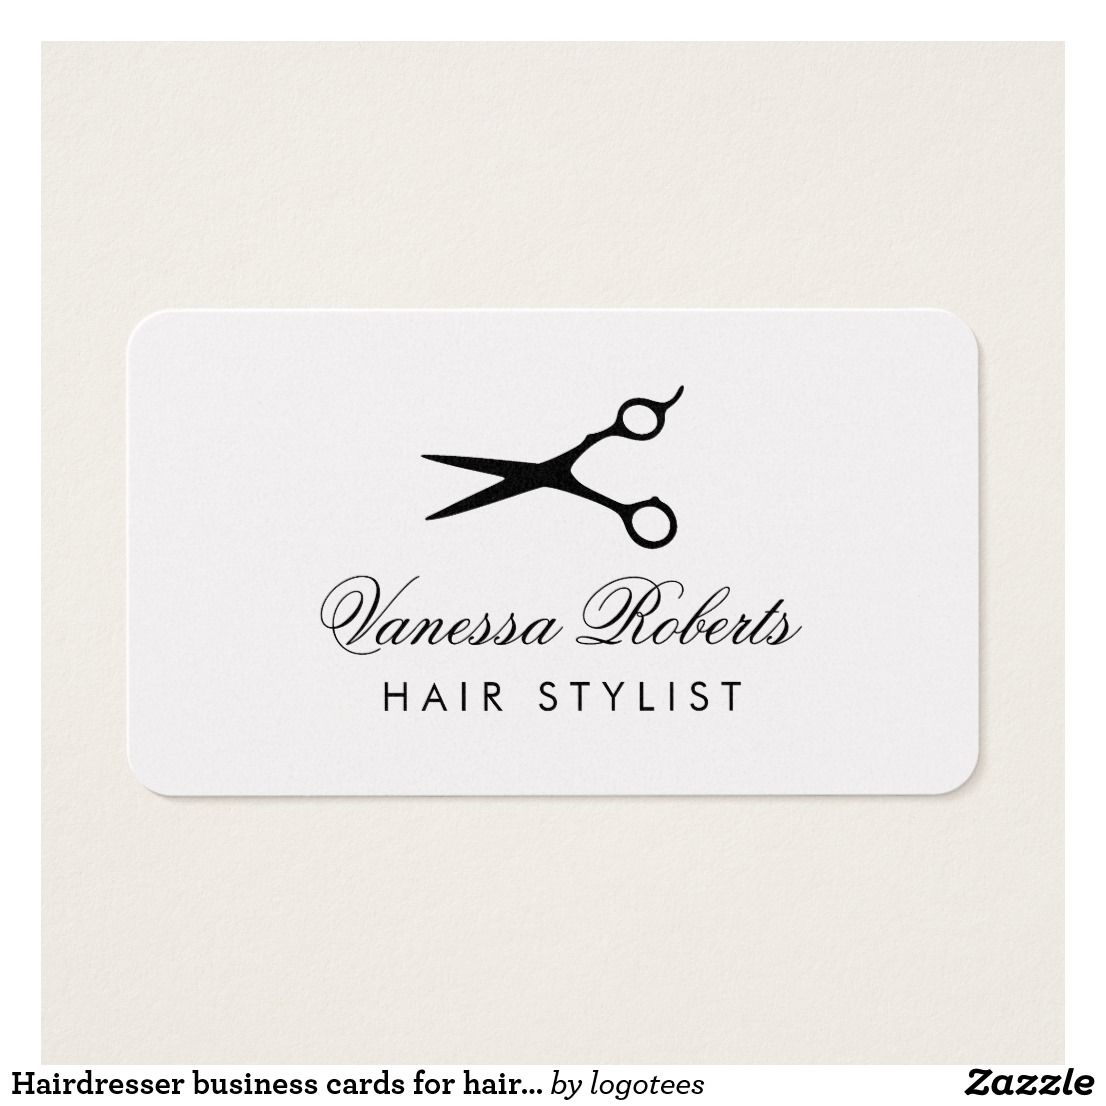 Hairdresser business cards for hair stylist salons business card hairdresser business cards for hair stylist salons professional barber scissors logo with elegant and modern friedricerecipe Choice Image